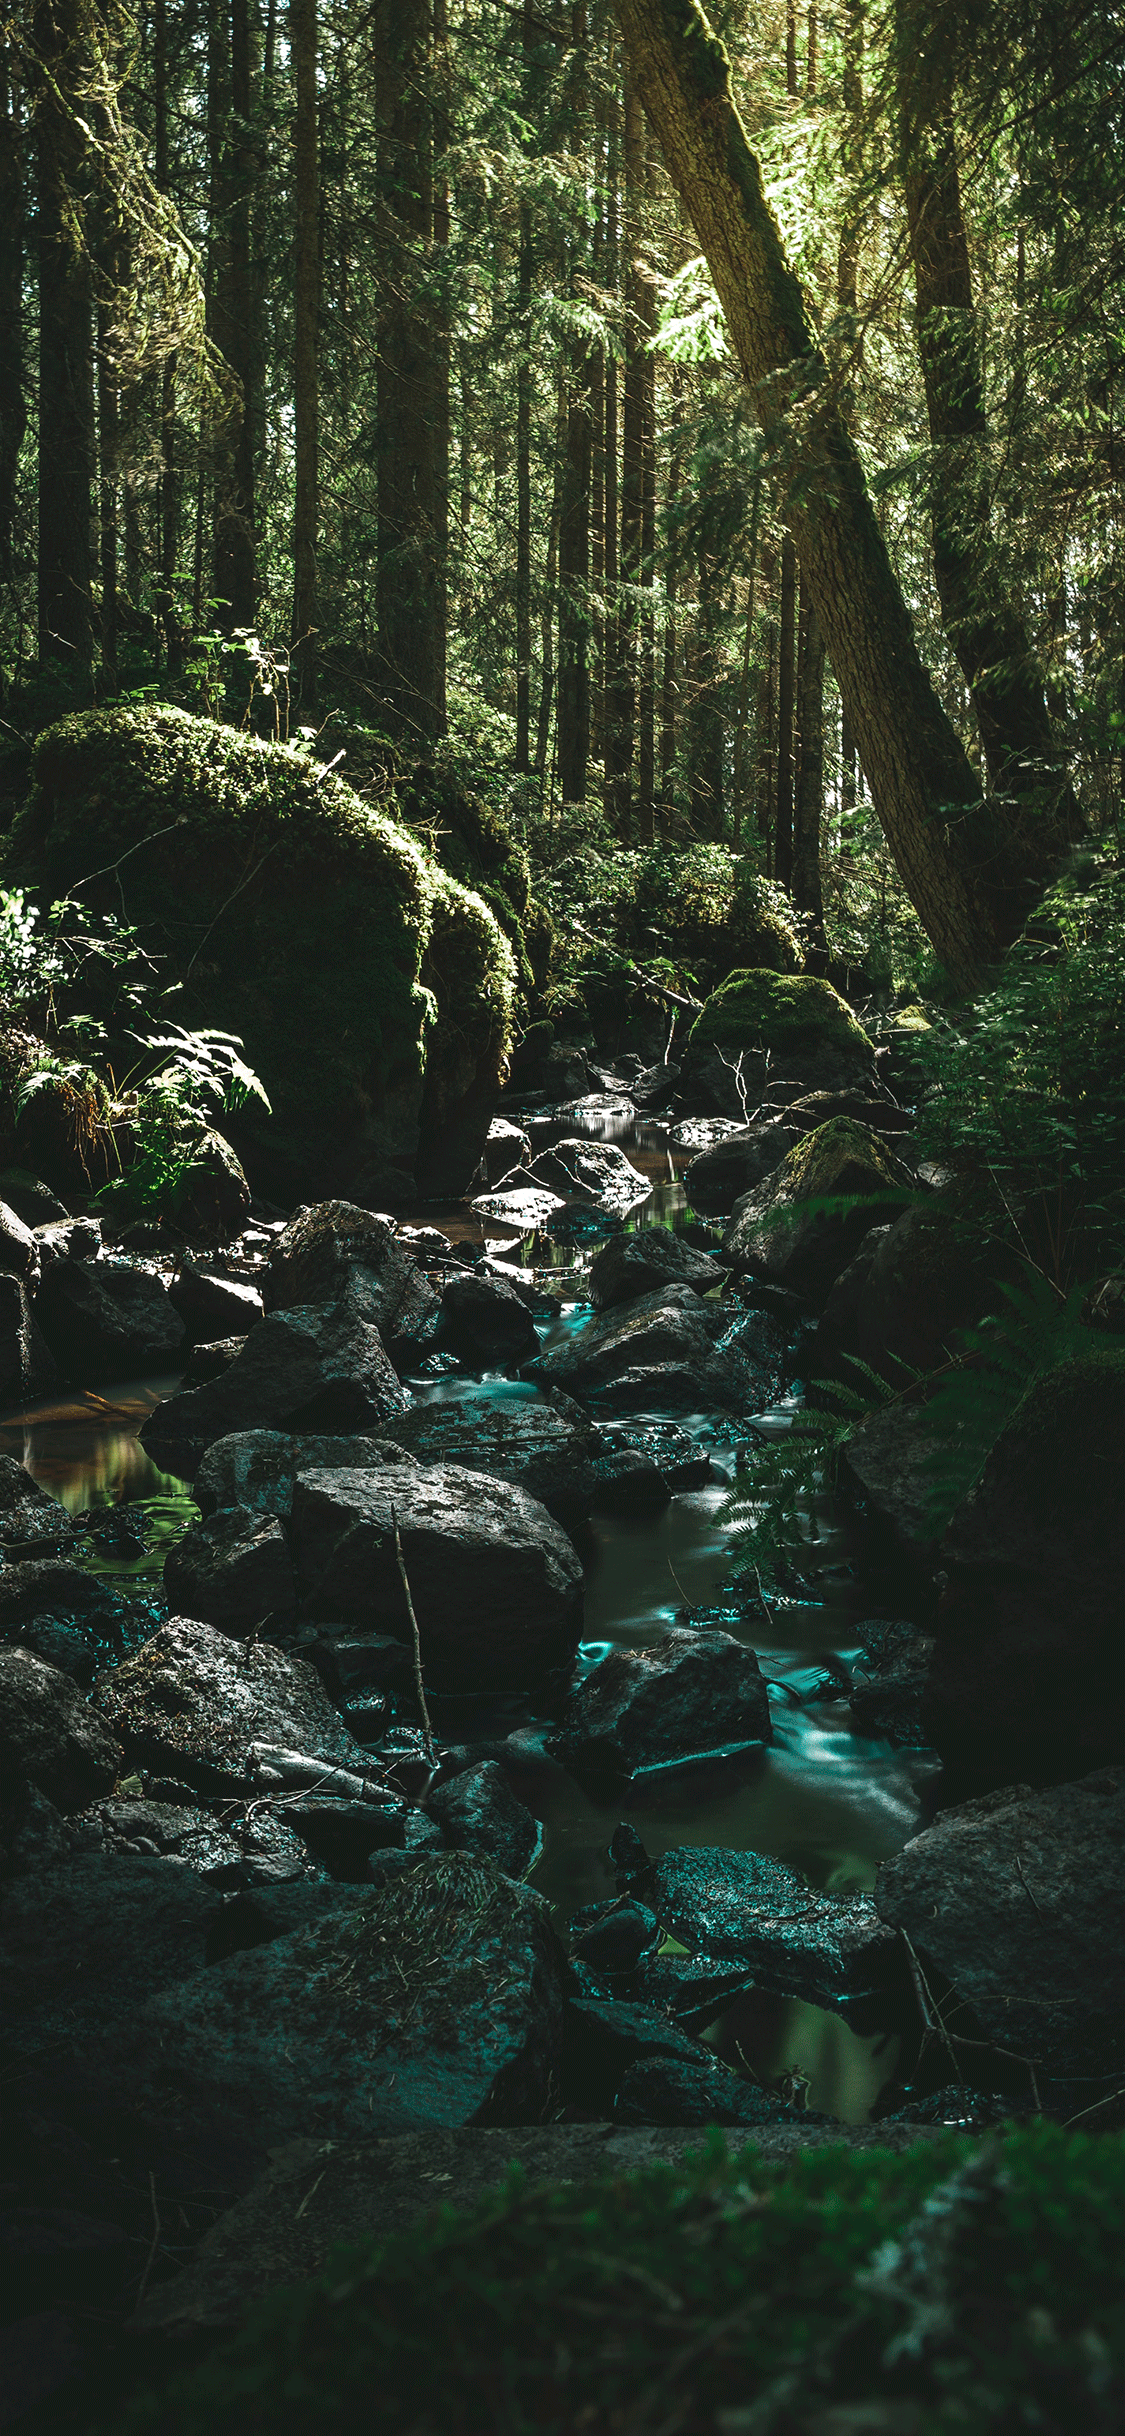 iPhone wallpaper forest river Forest